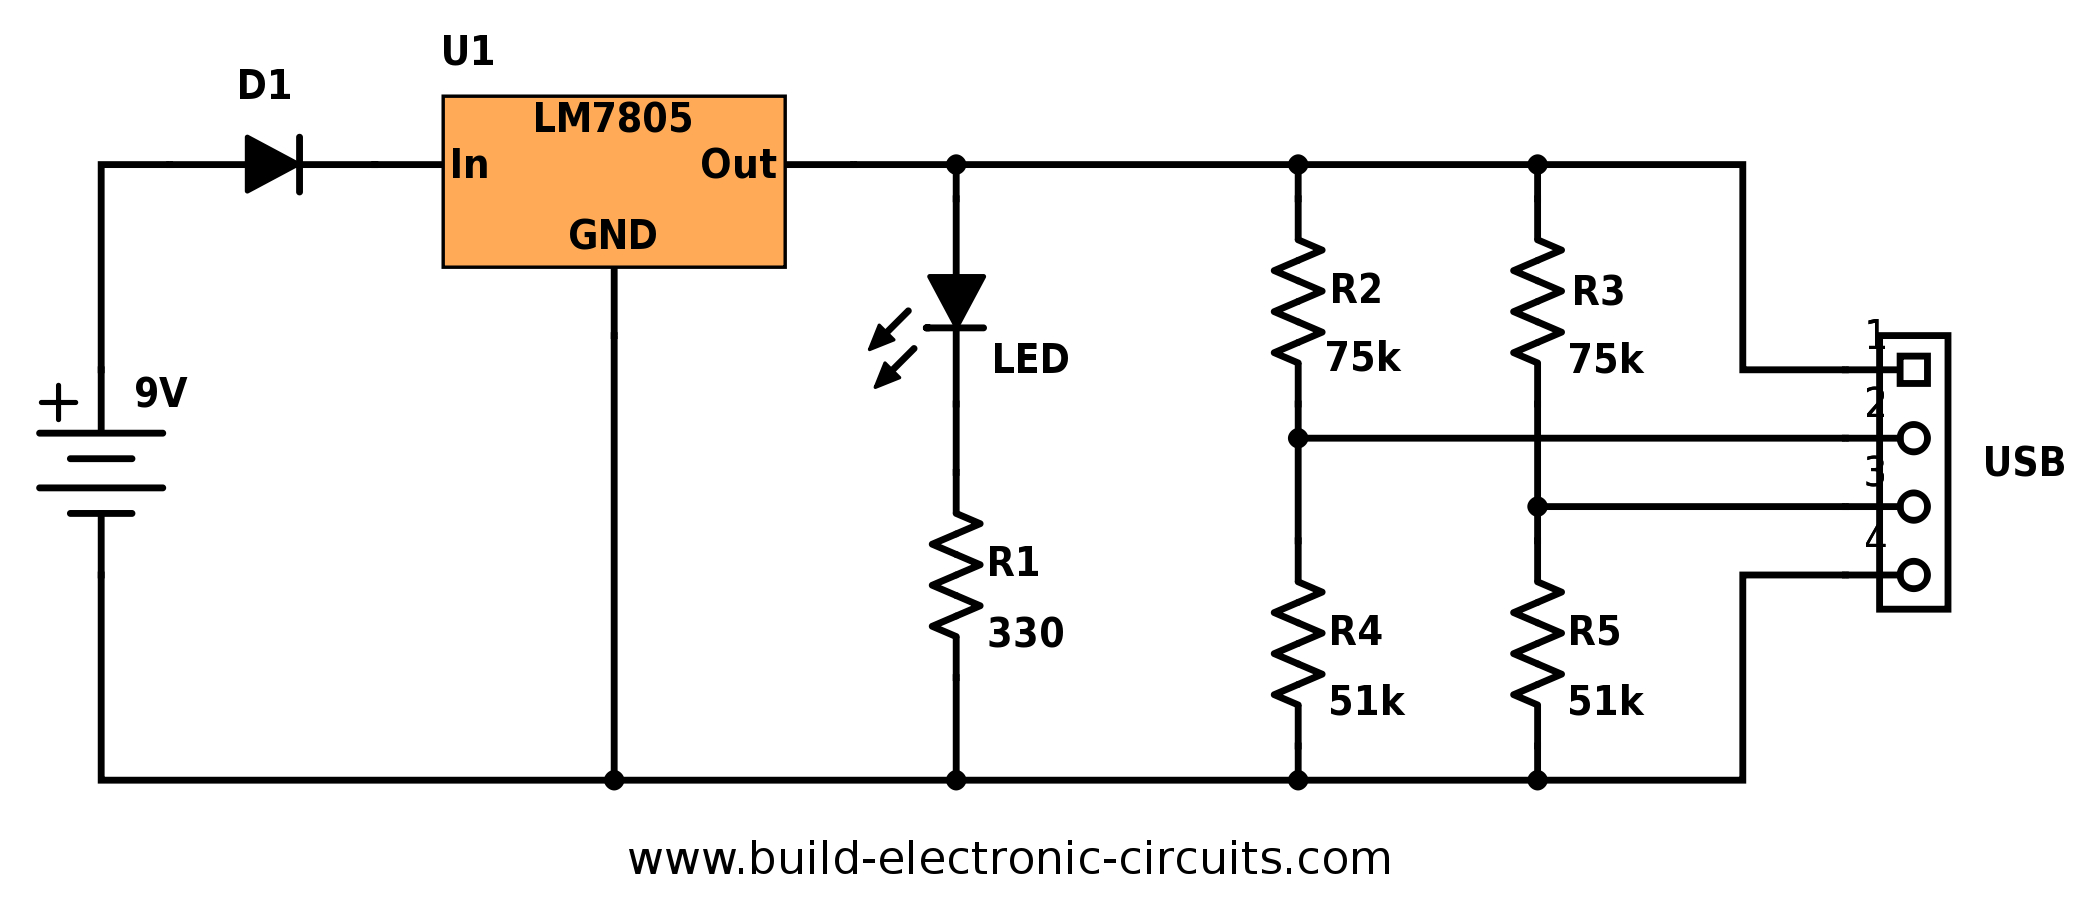 Portable Usb Charger Circuit - Build Electronic Circuits - Diagram Of Usb Charger Wiring